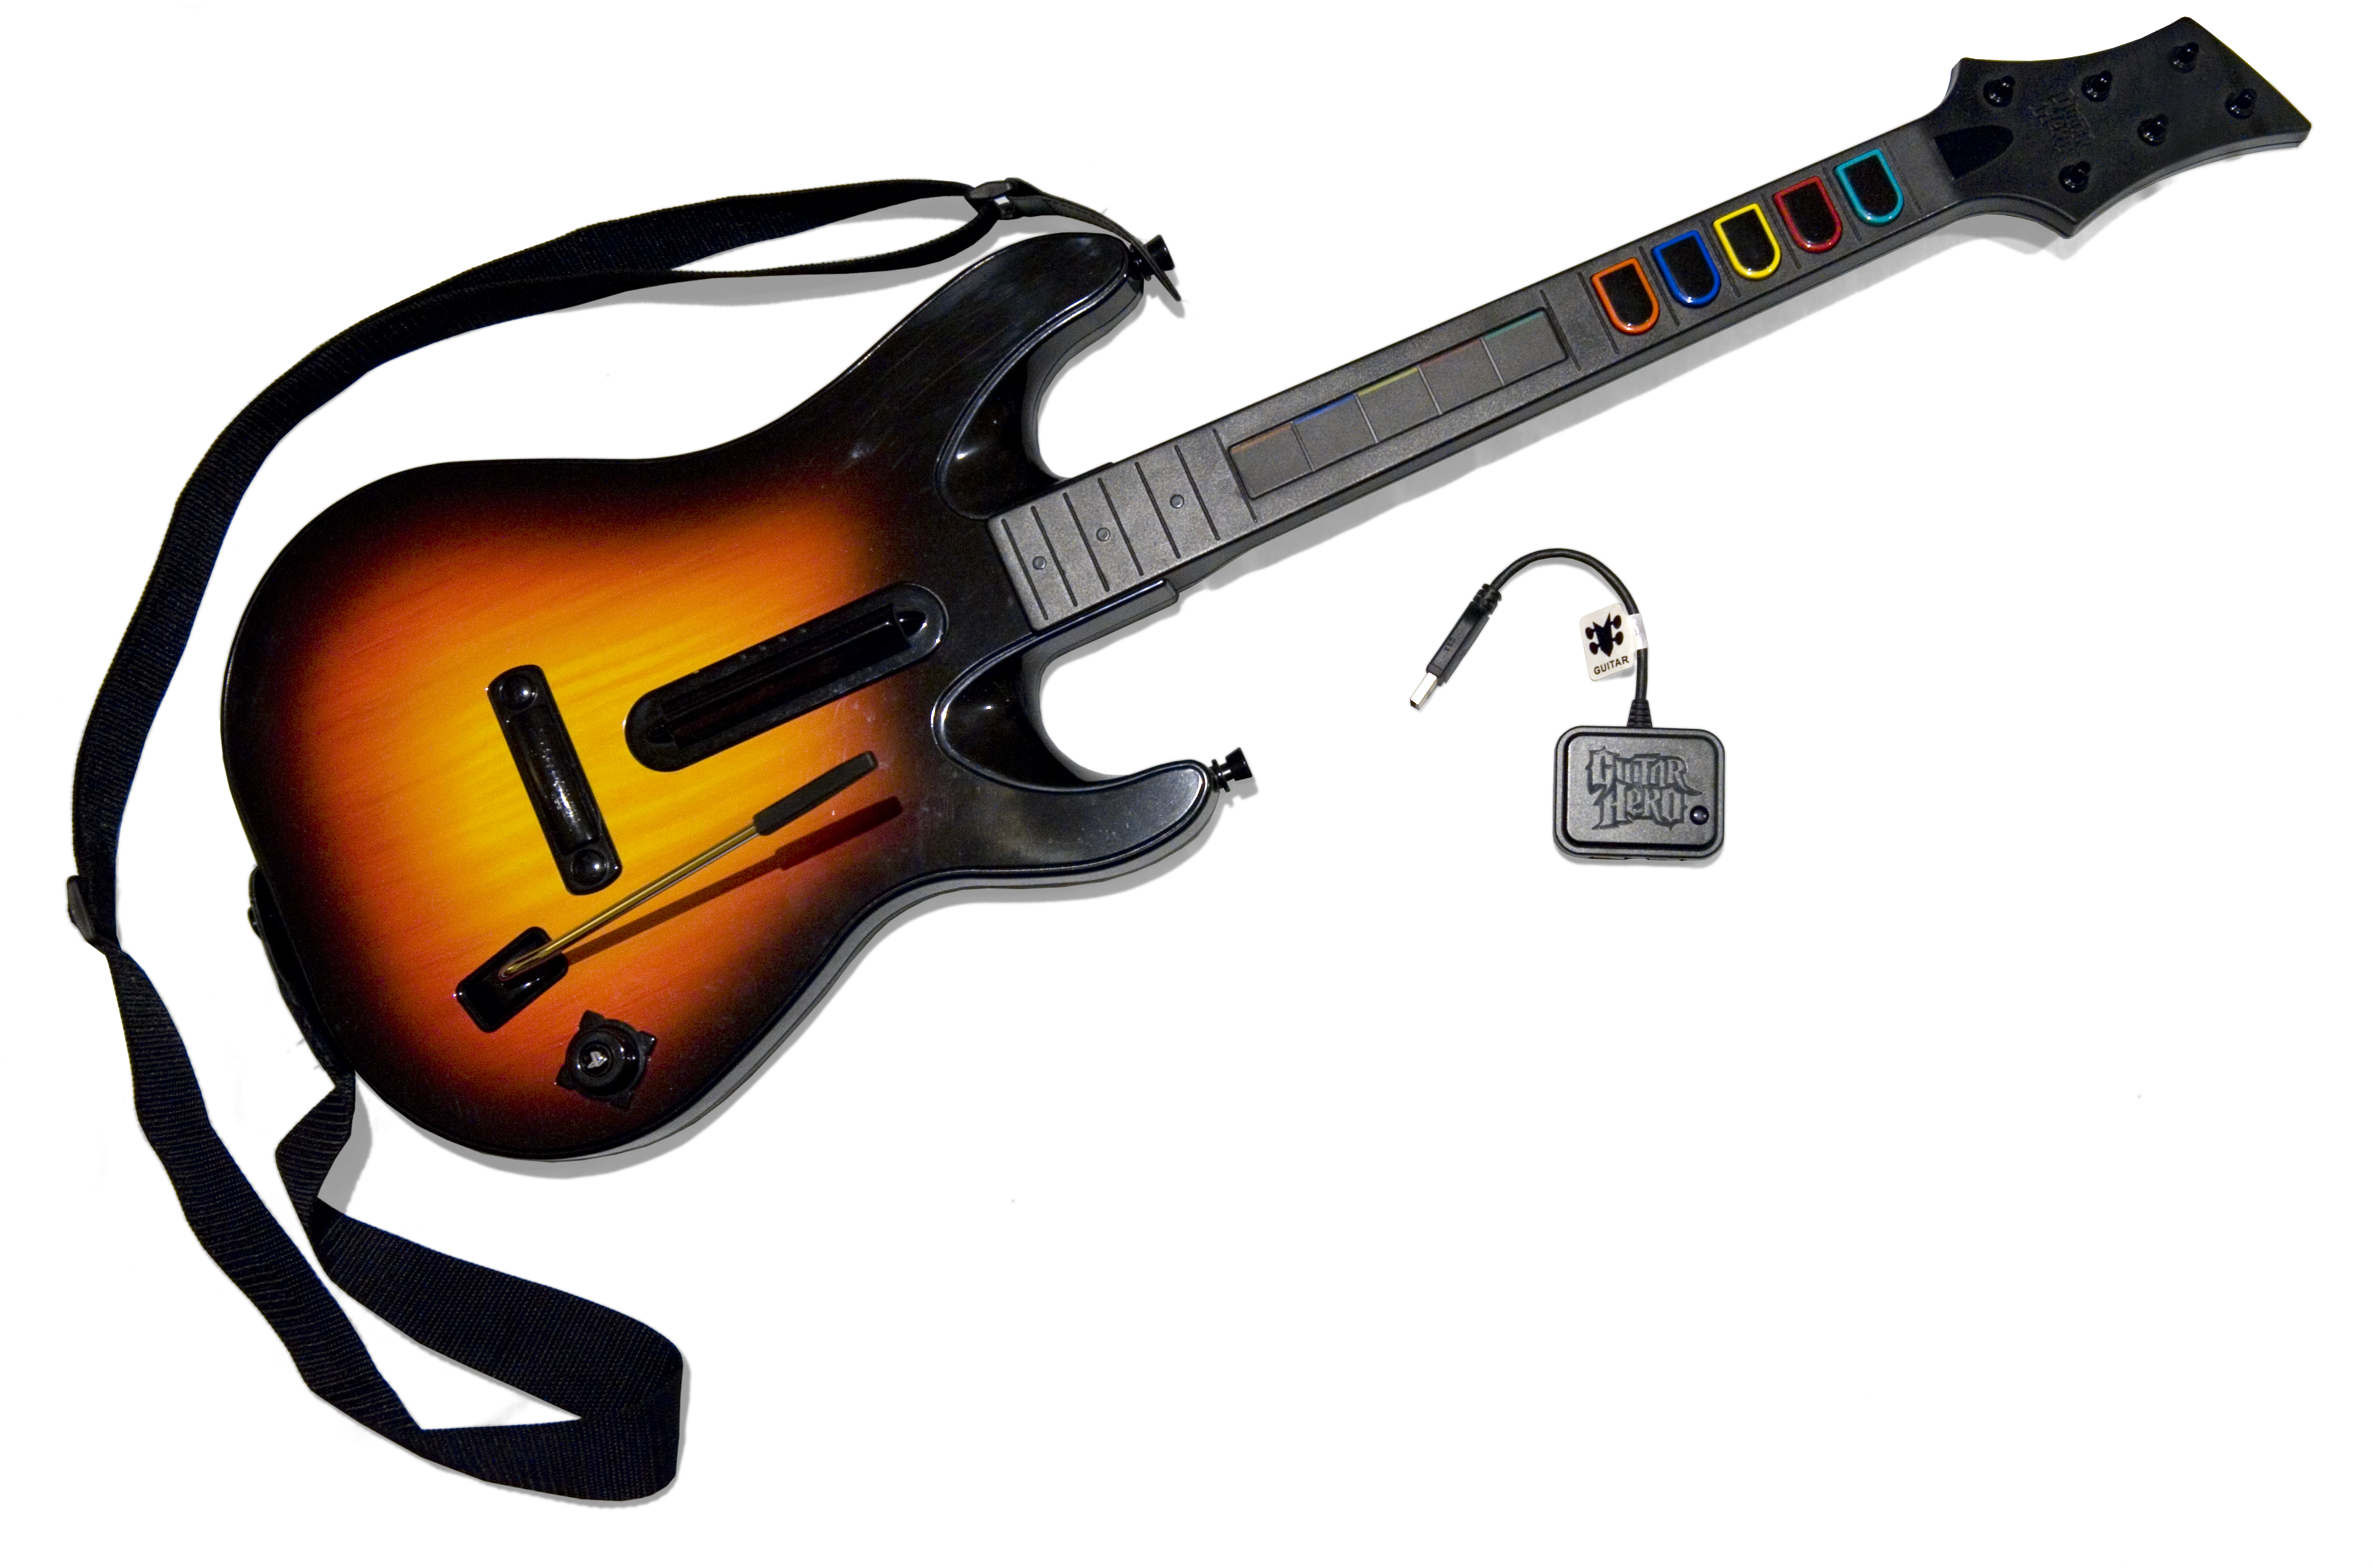 Guitar hero buttons png. Download world tour controller